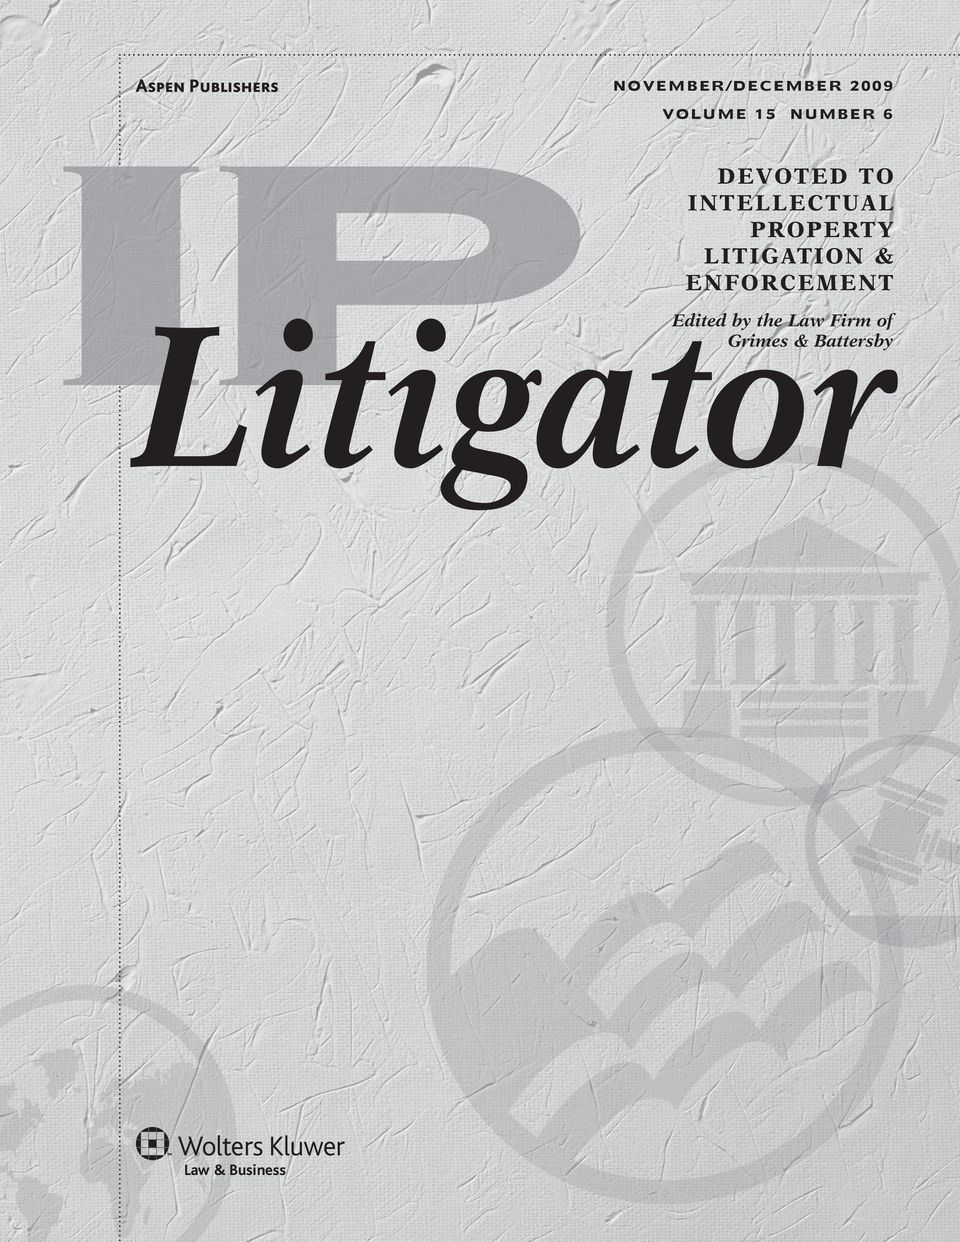 LIT IGATION & ENFORCEMENT Edited by the